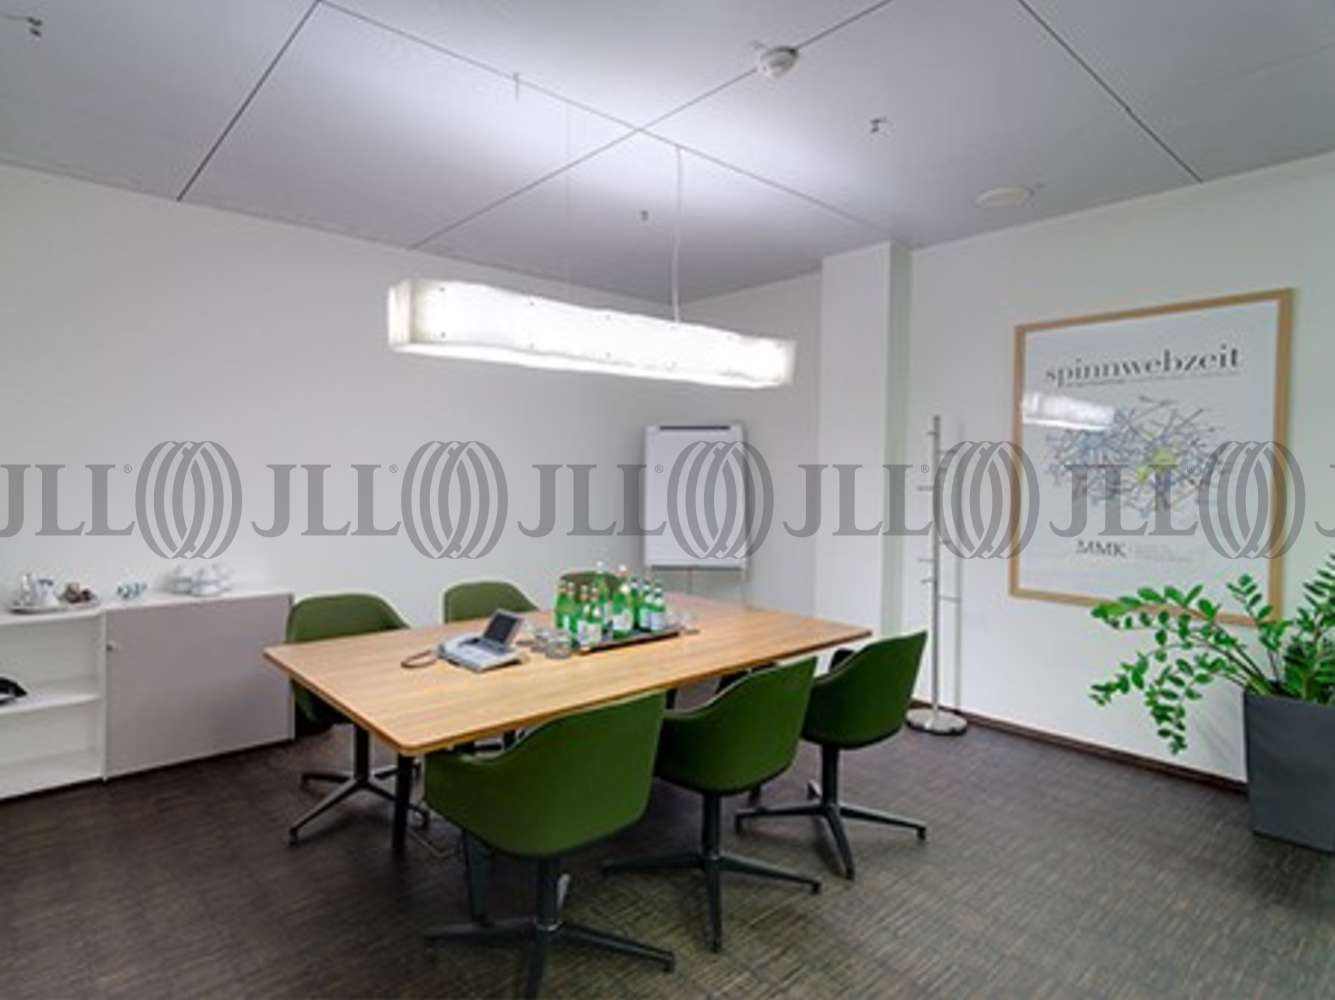 Coworking / flex office Frankfurt am main, 60549 -  Frankfurt am Main - C0037